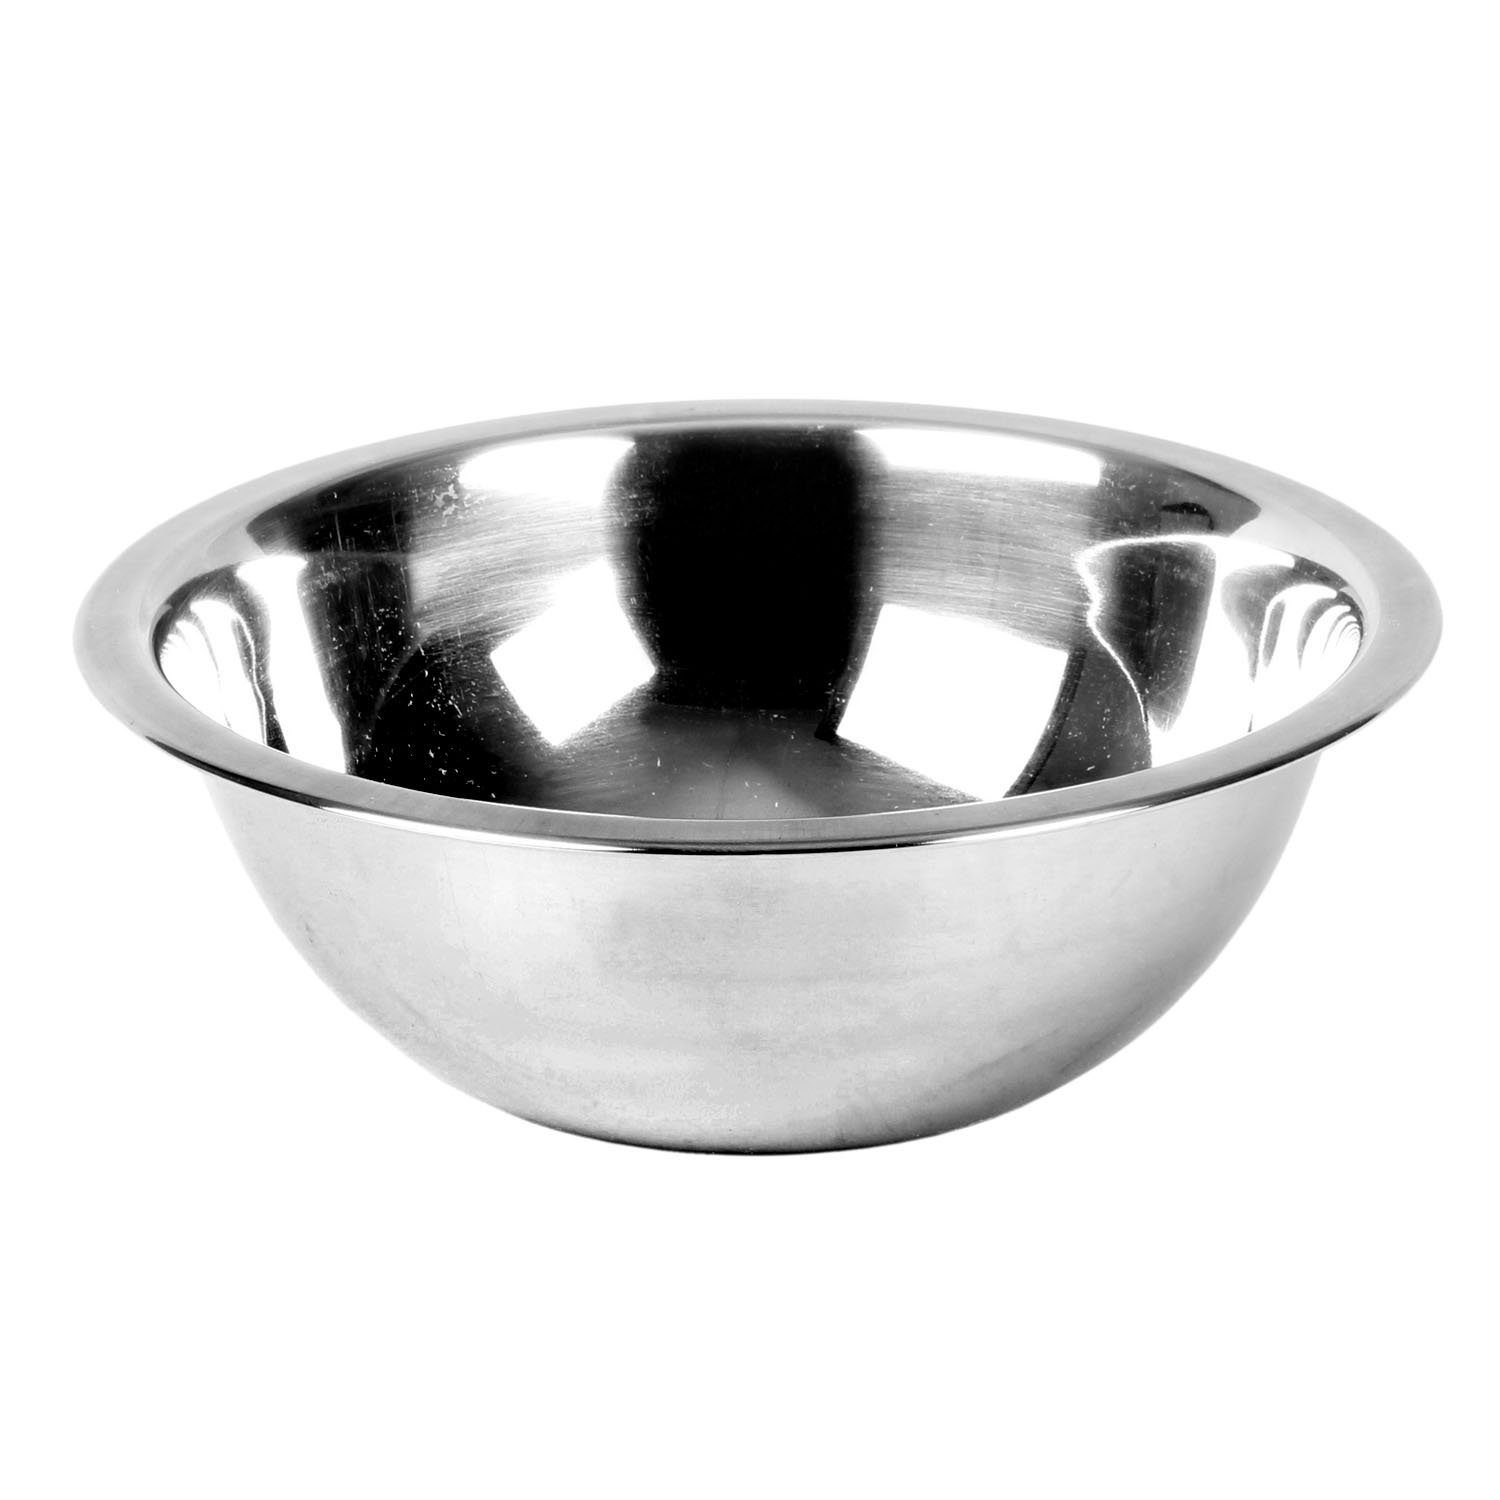 Excellante Mixing Bowl, Heavy Duty, Stainless Steel, 22 gauge, 0.75 quart, 0.8 mm